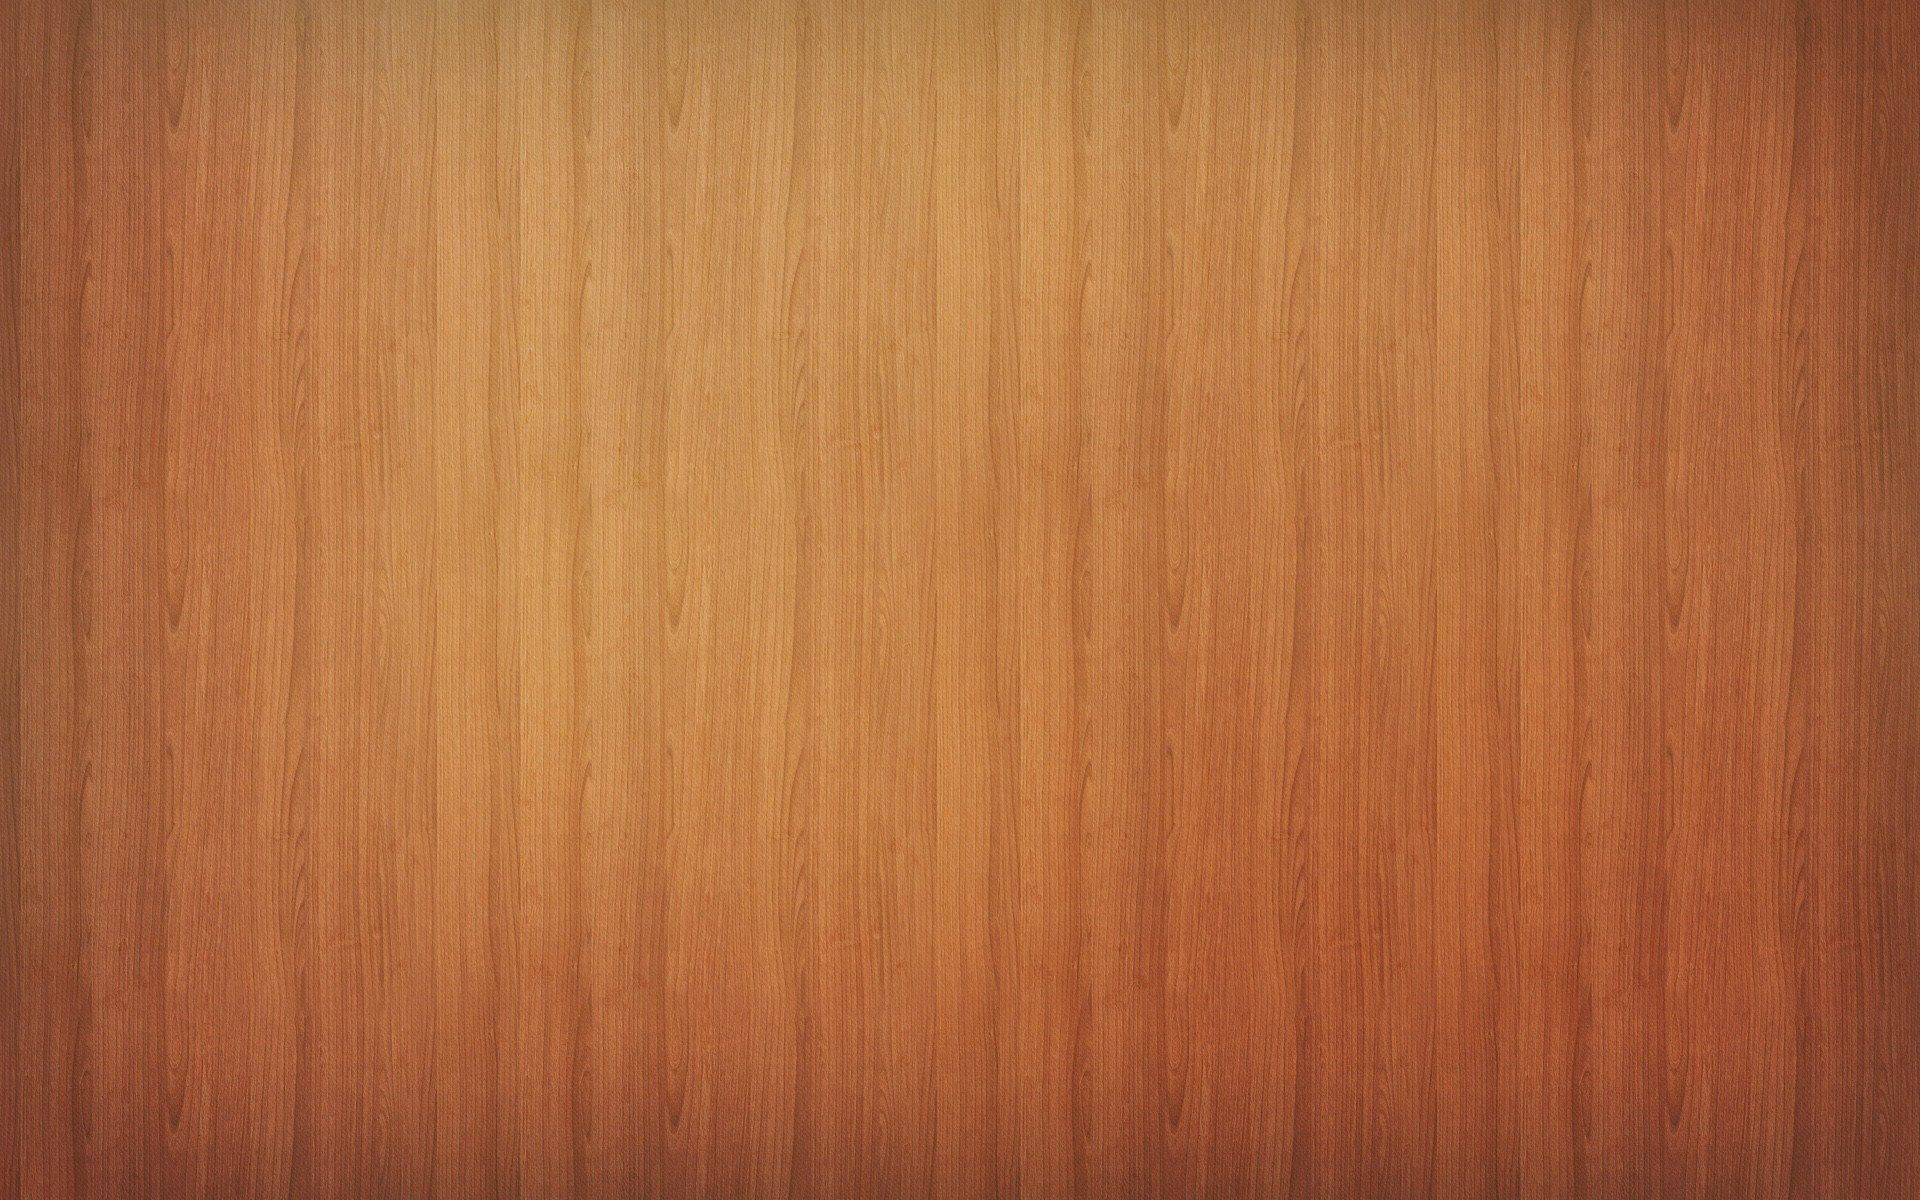 1920x1200 wood wallpaper nice